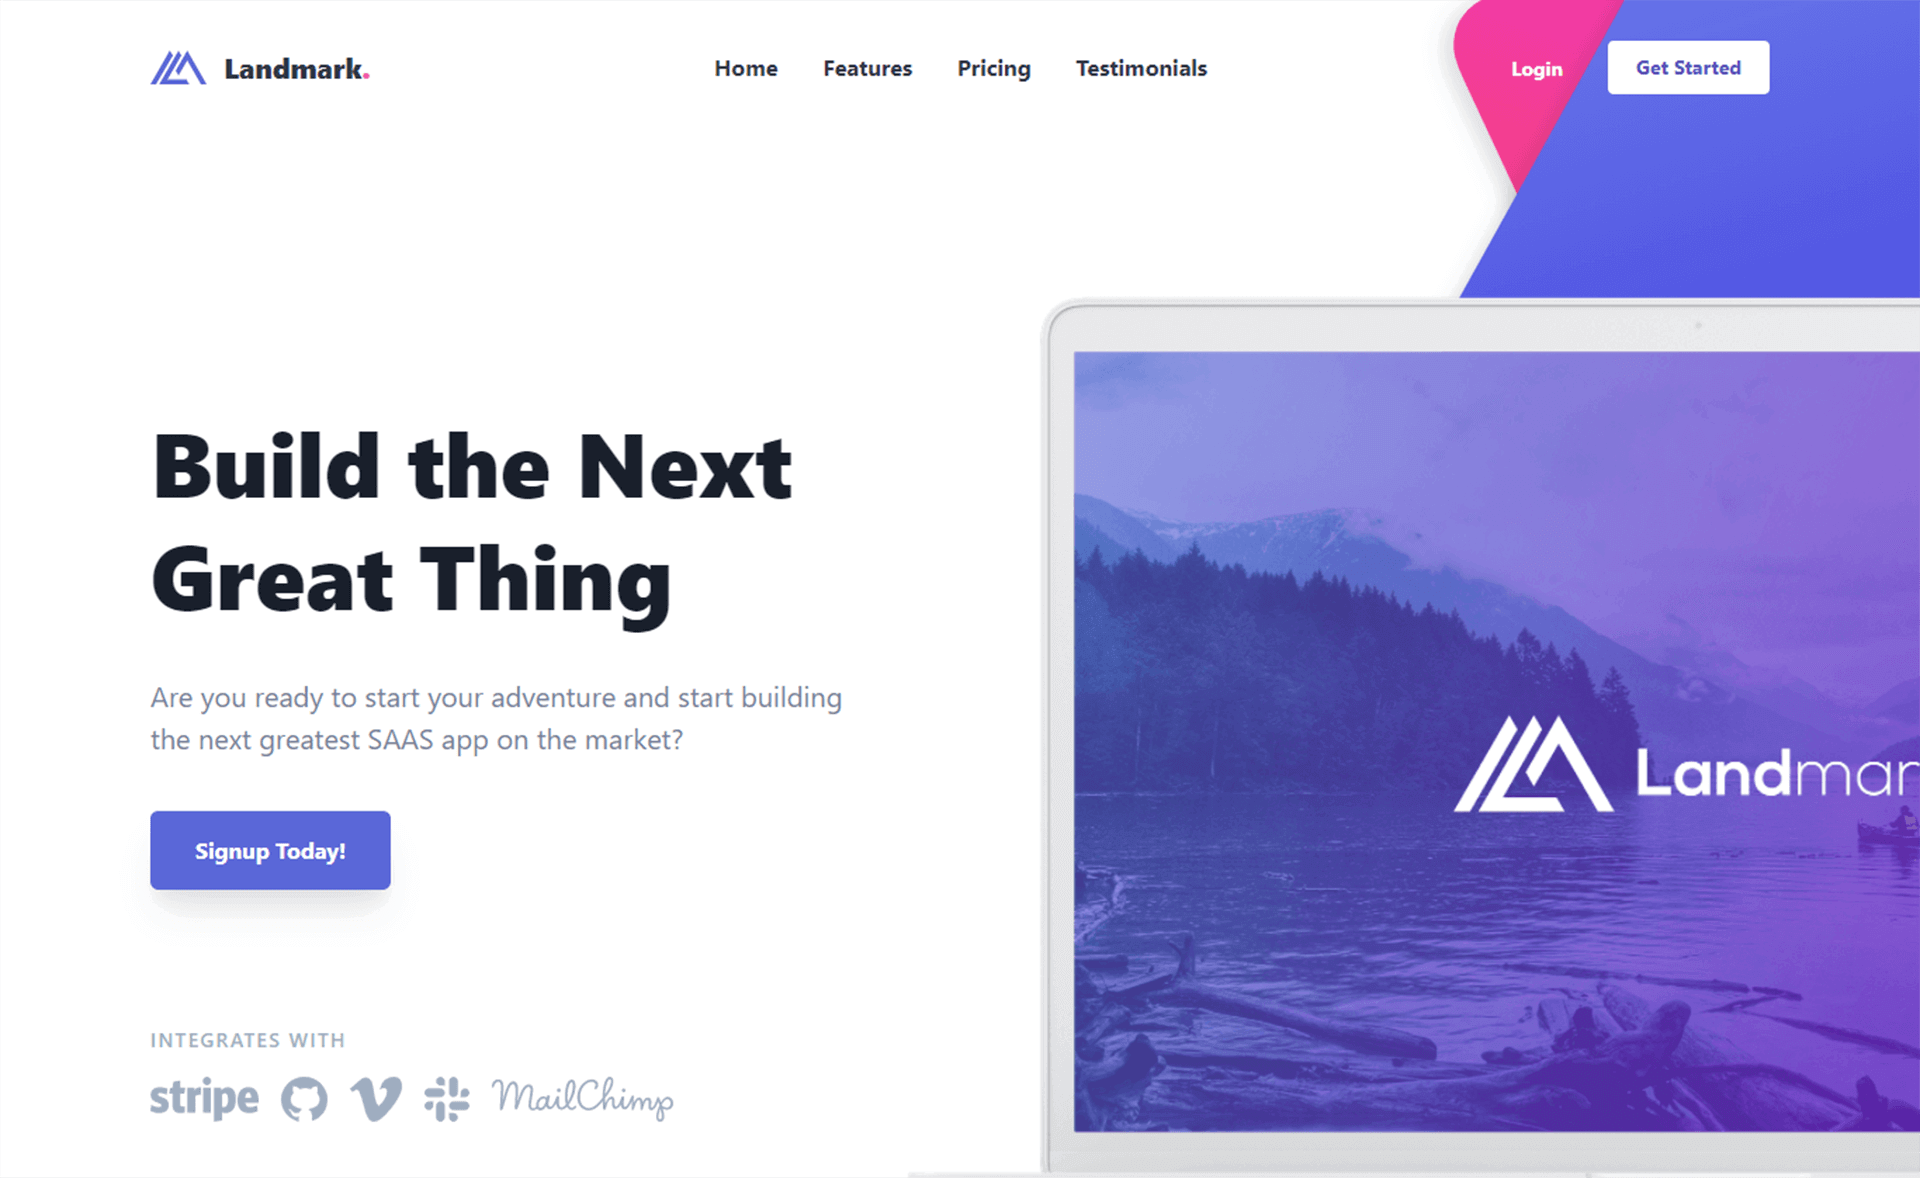 Free Tailwind CSS Landing Page Website Template